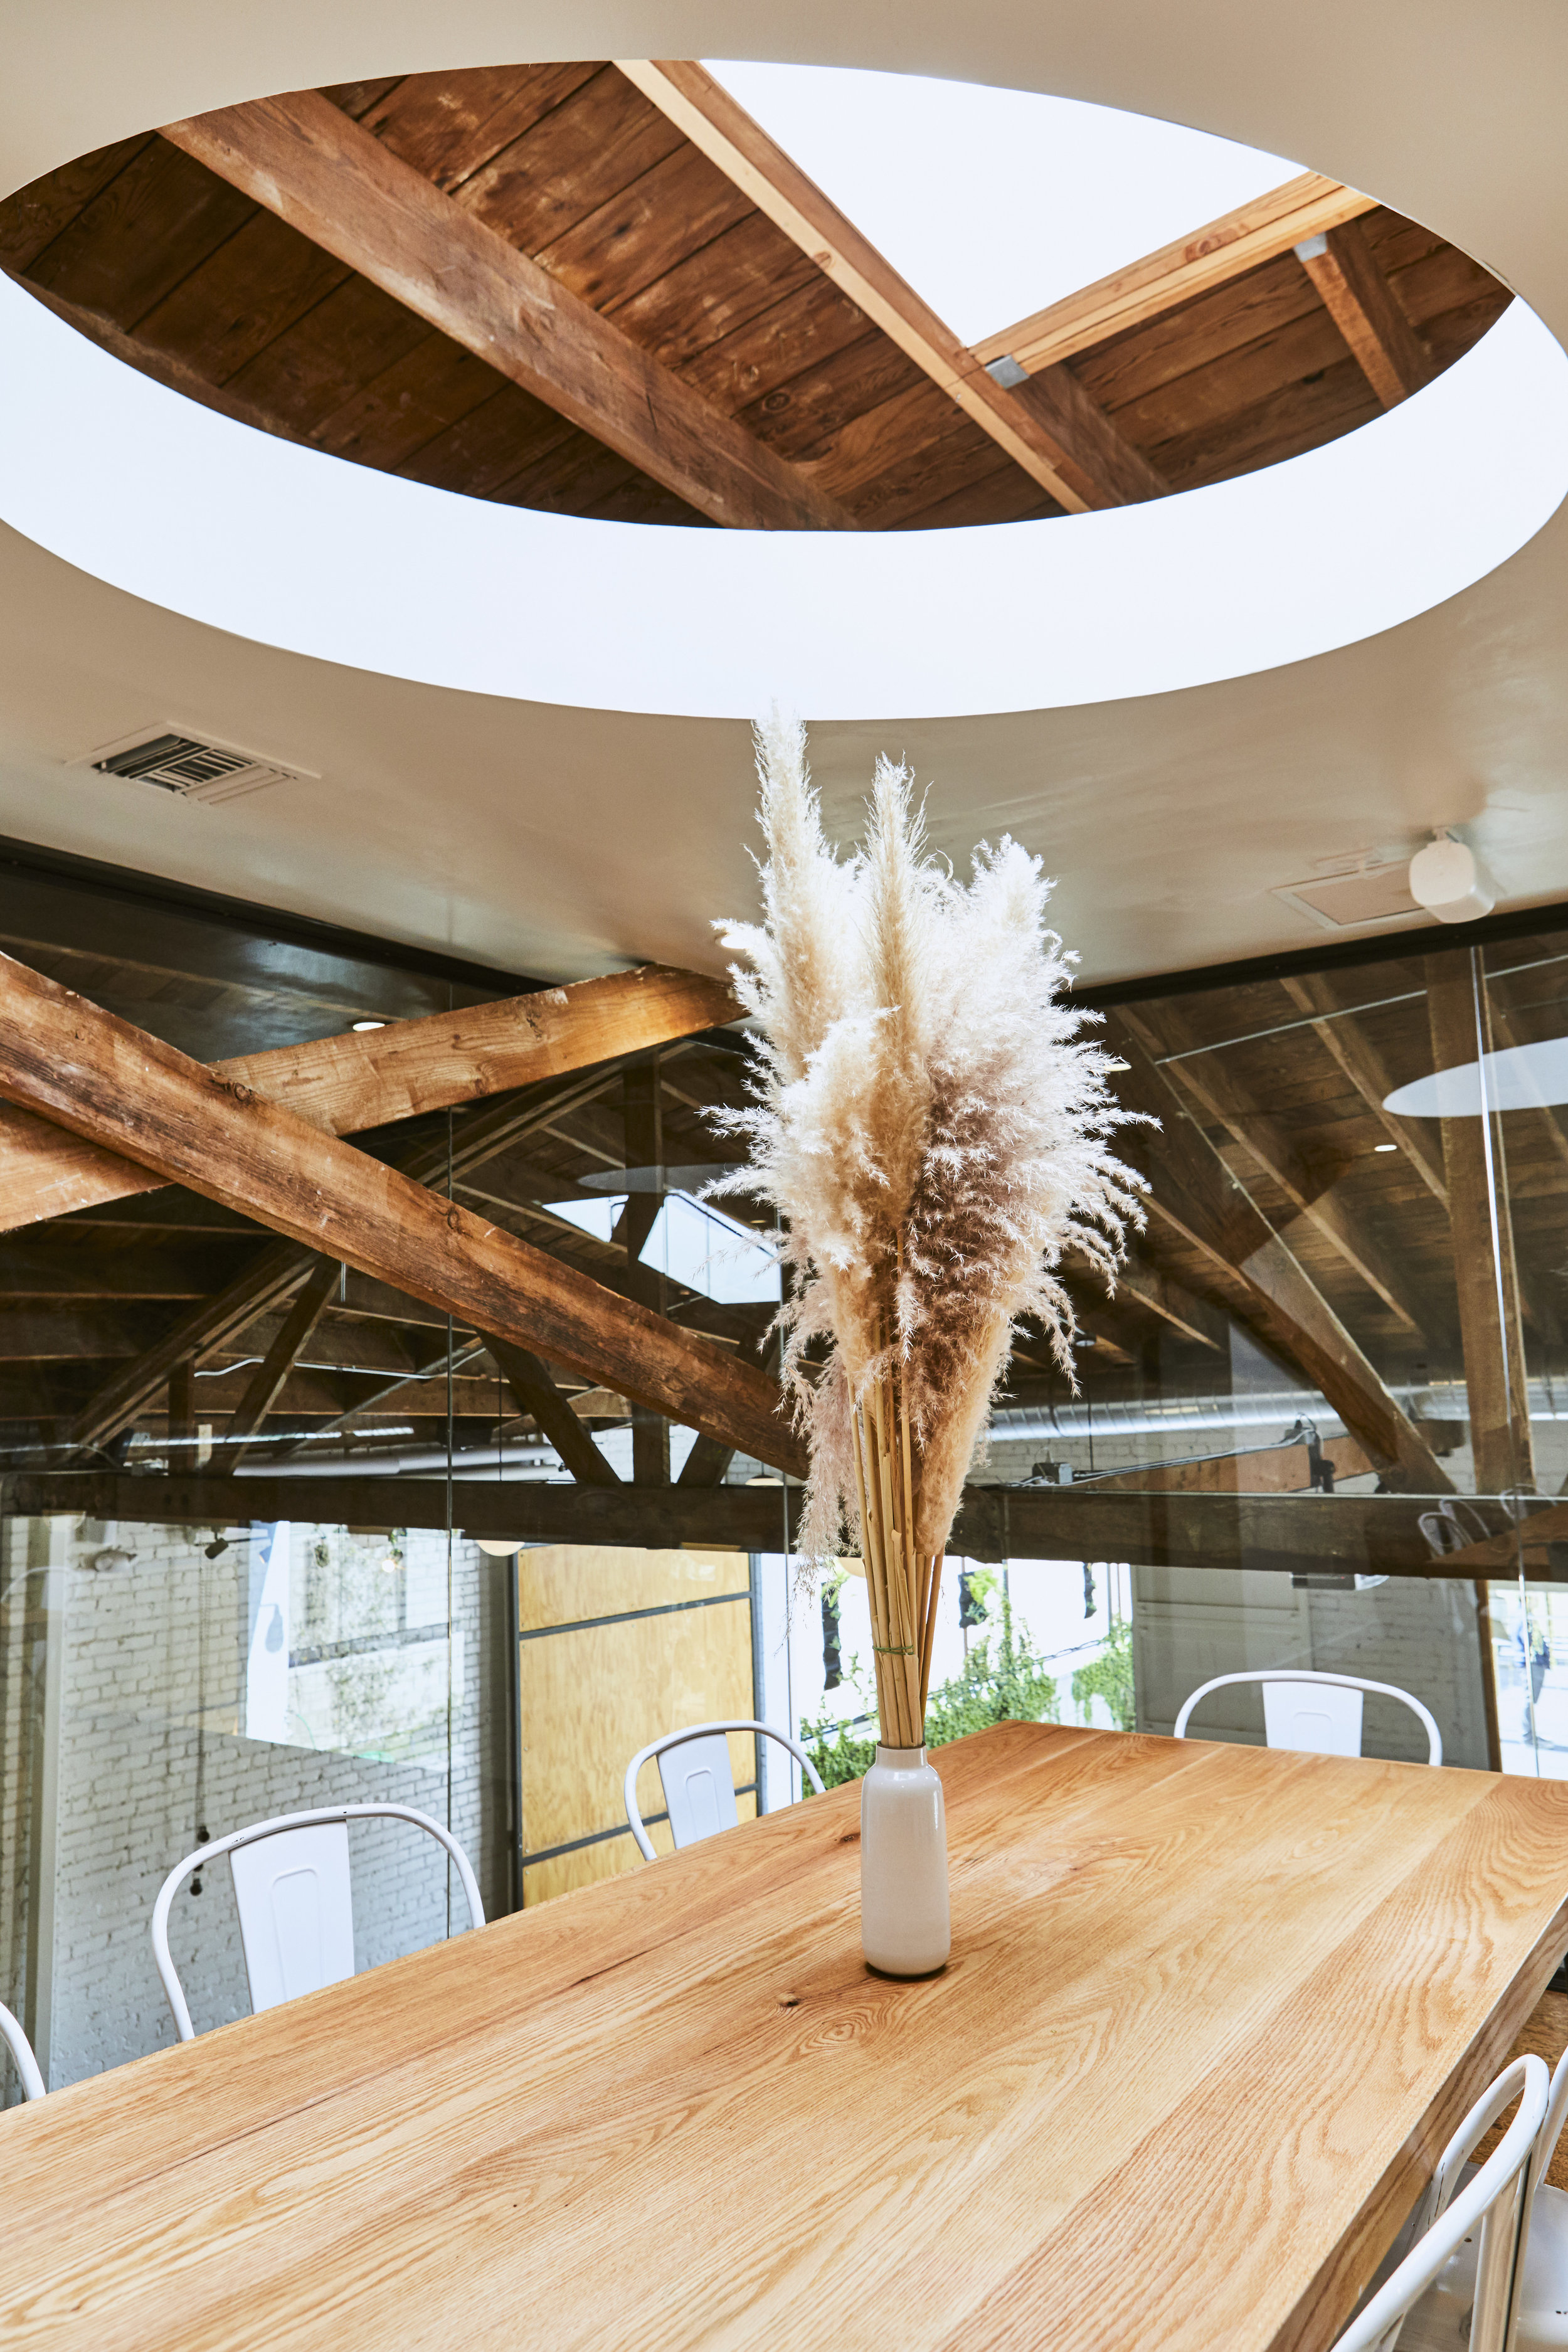 The oval opens up to an oversized skylight. The conference room is full of natural light.